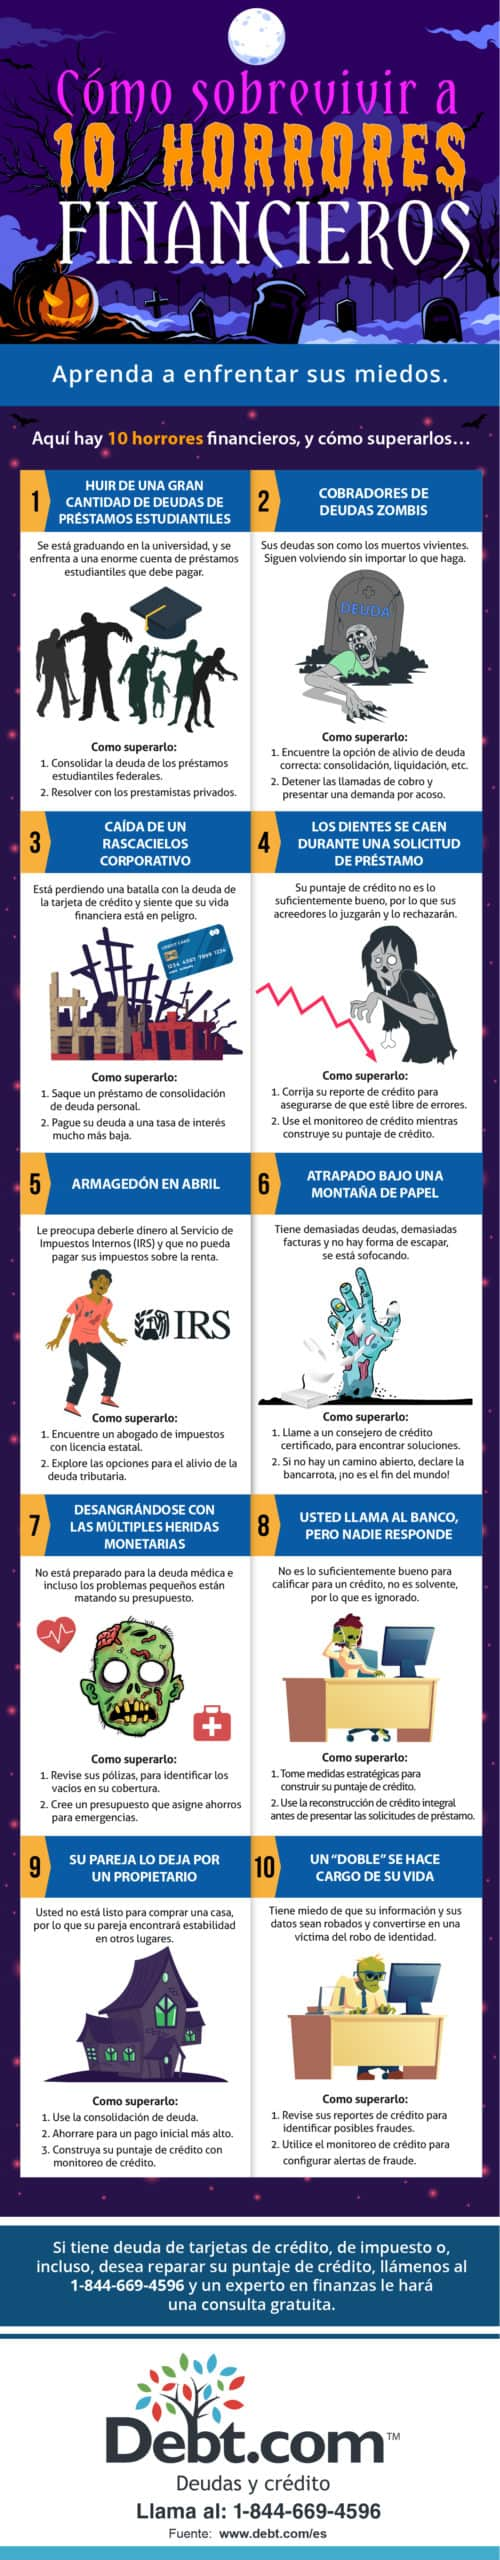 10 horrores financieros